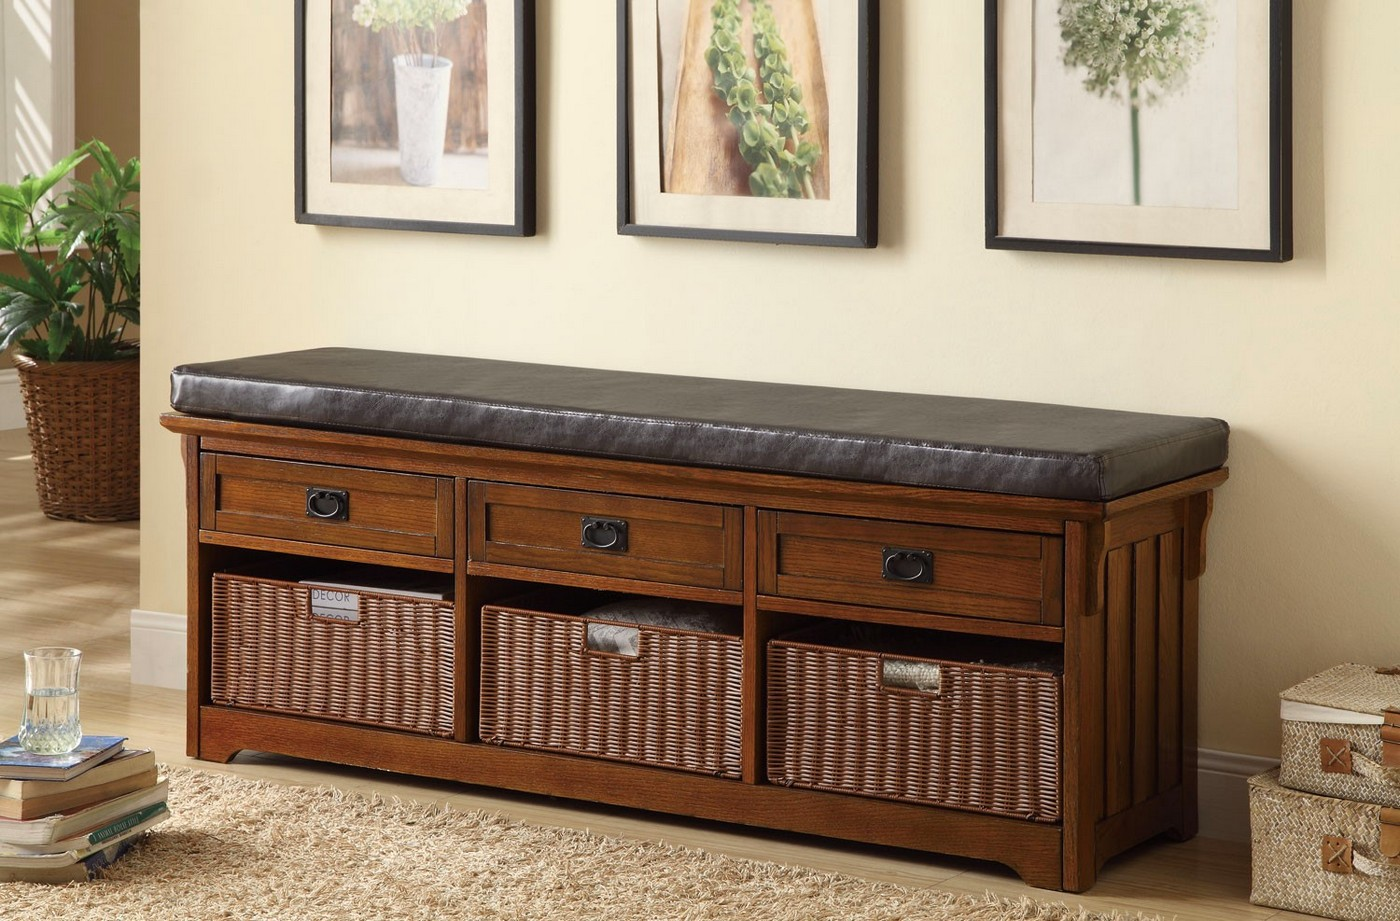 Dark Brown Upholstered Oak Bench With Basket Or Drawers